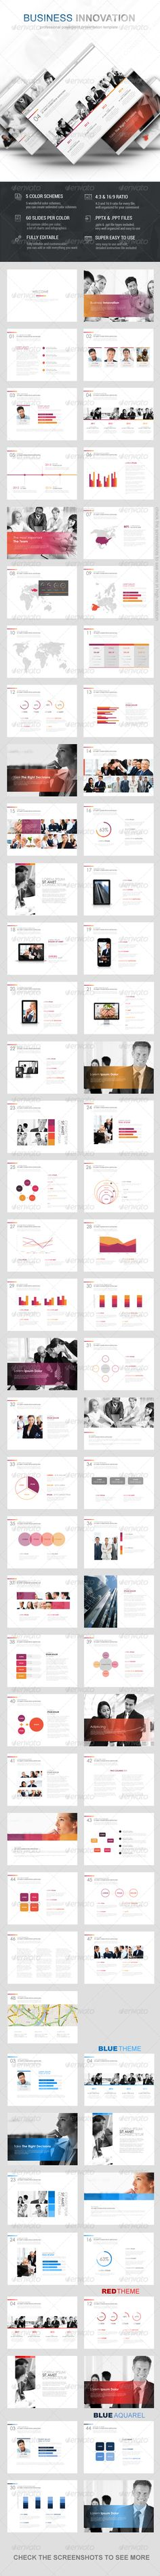 1x1.trans Business Innovation Powerpoint Template (Powerpoint Templates)